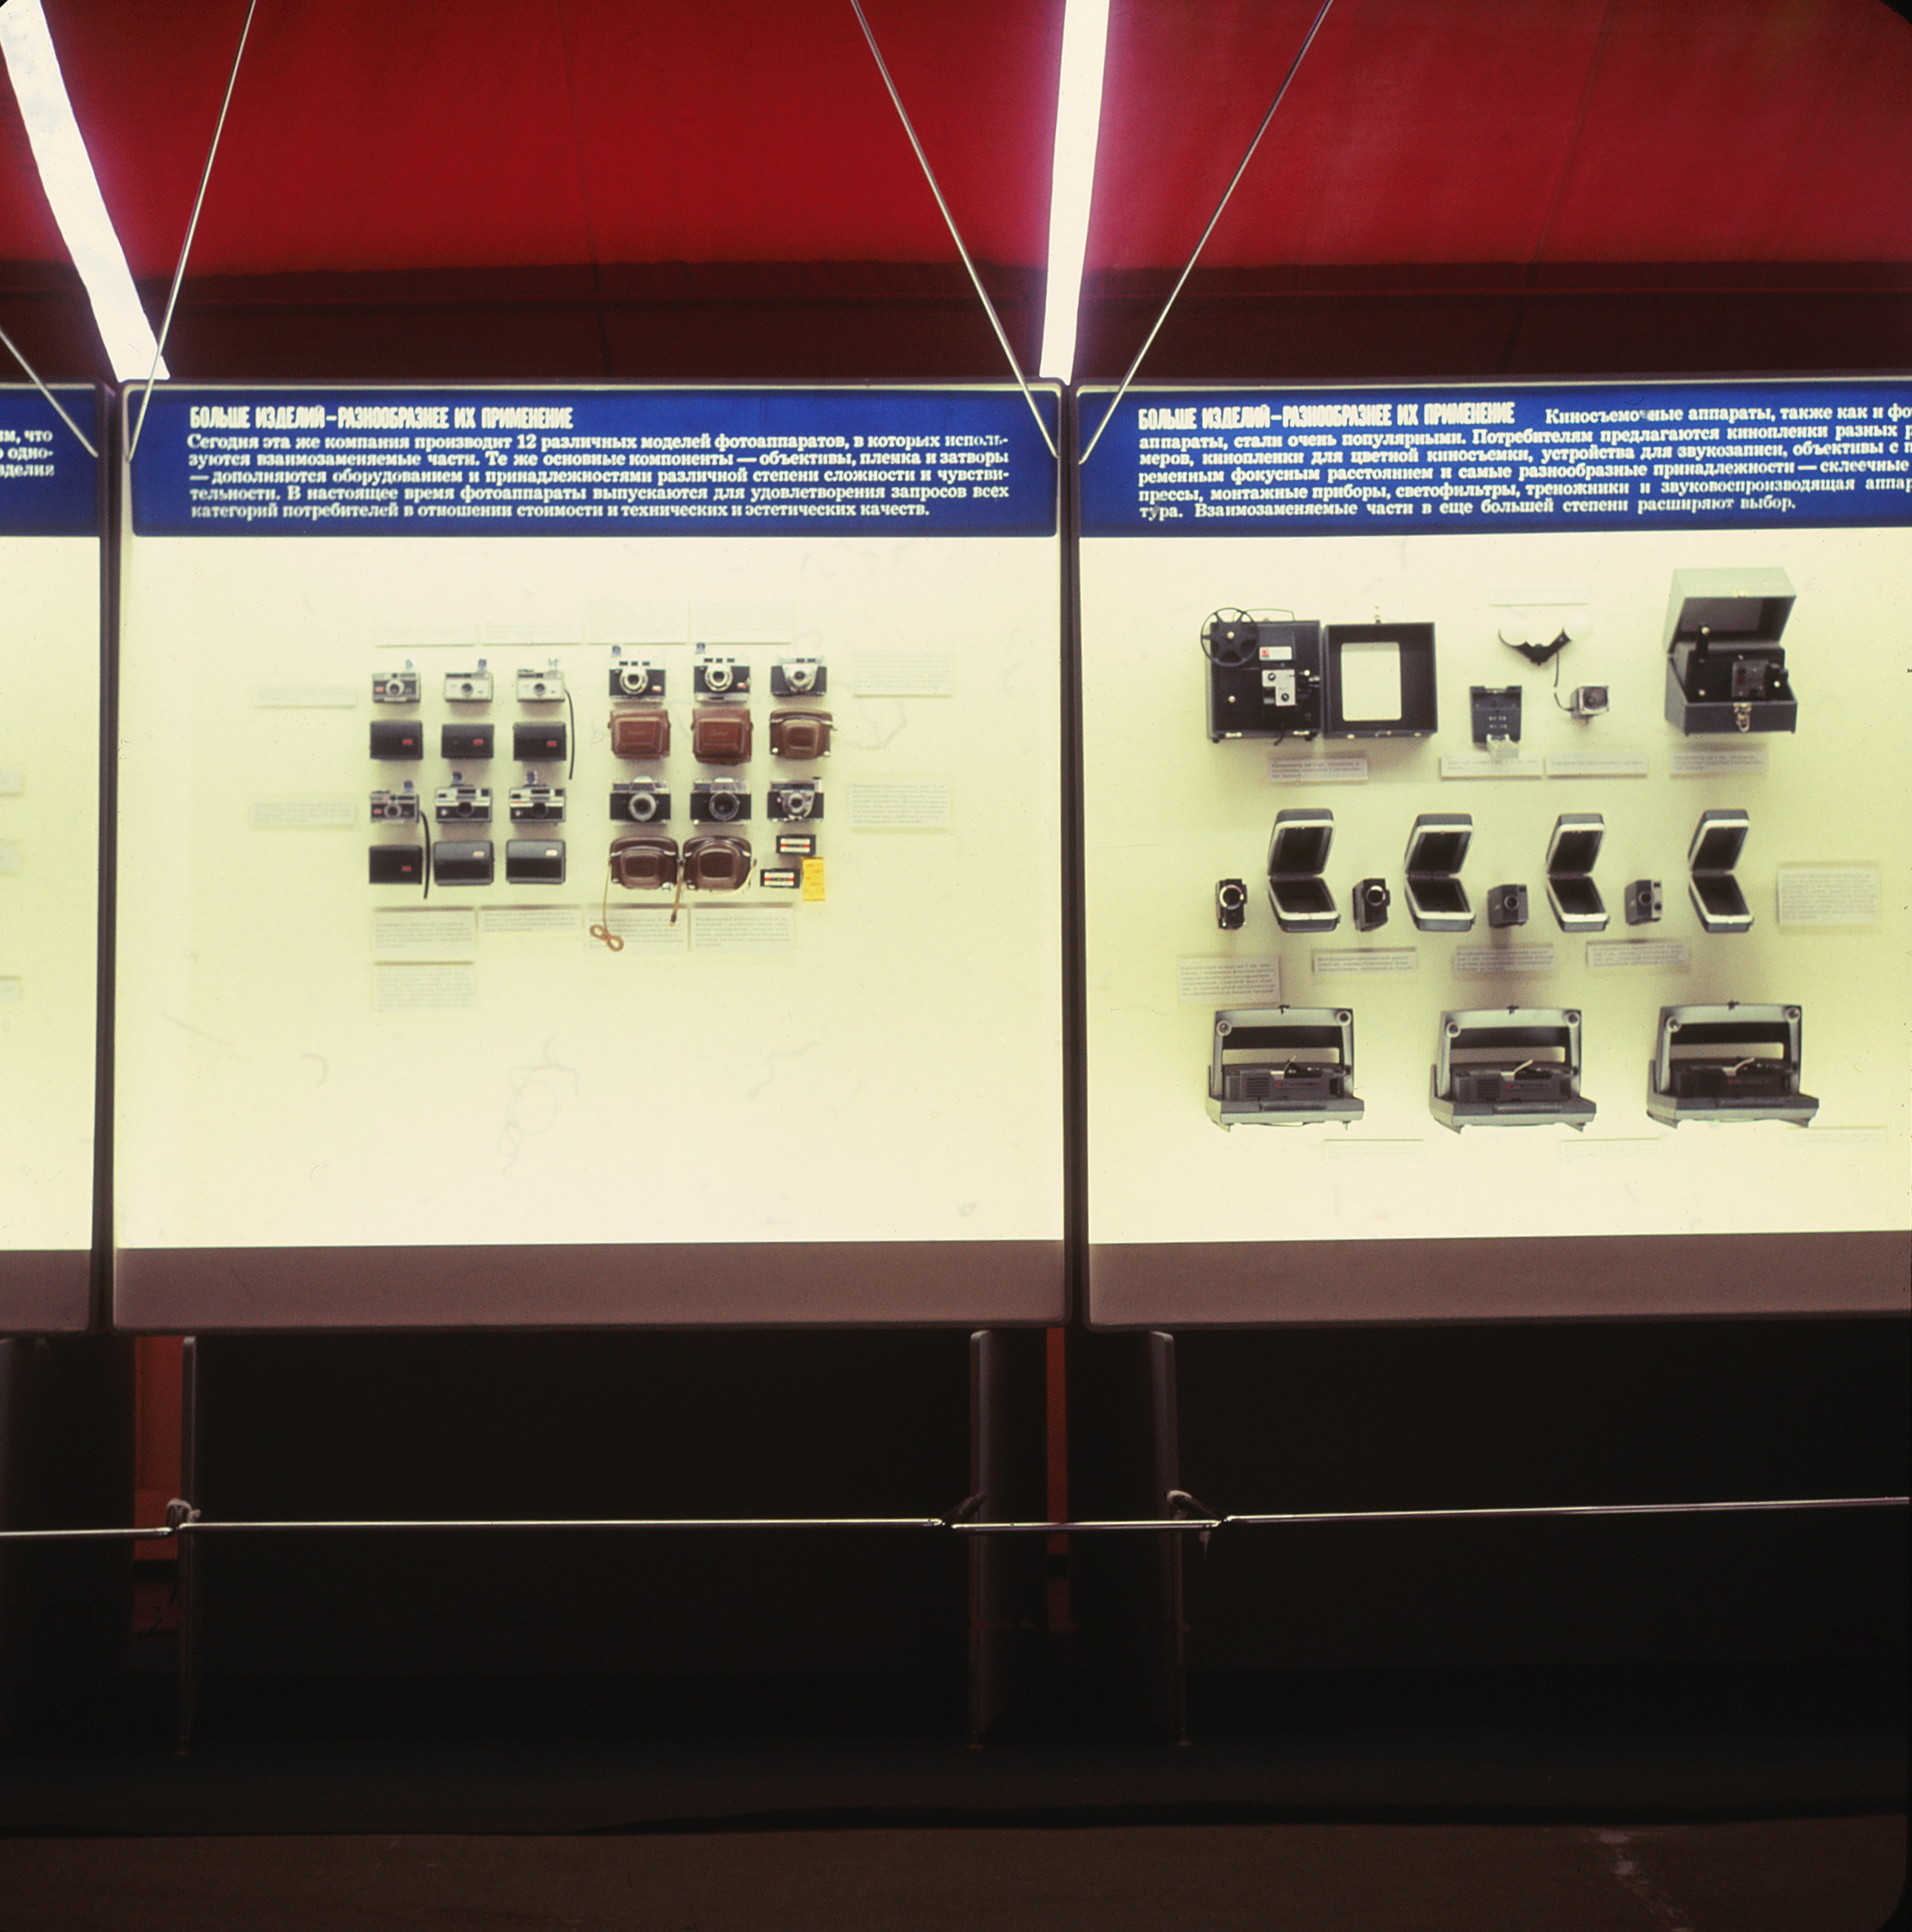 Display cases, center, with cameras featured.